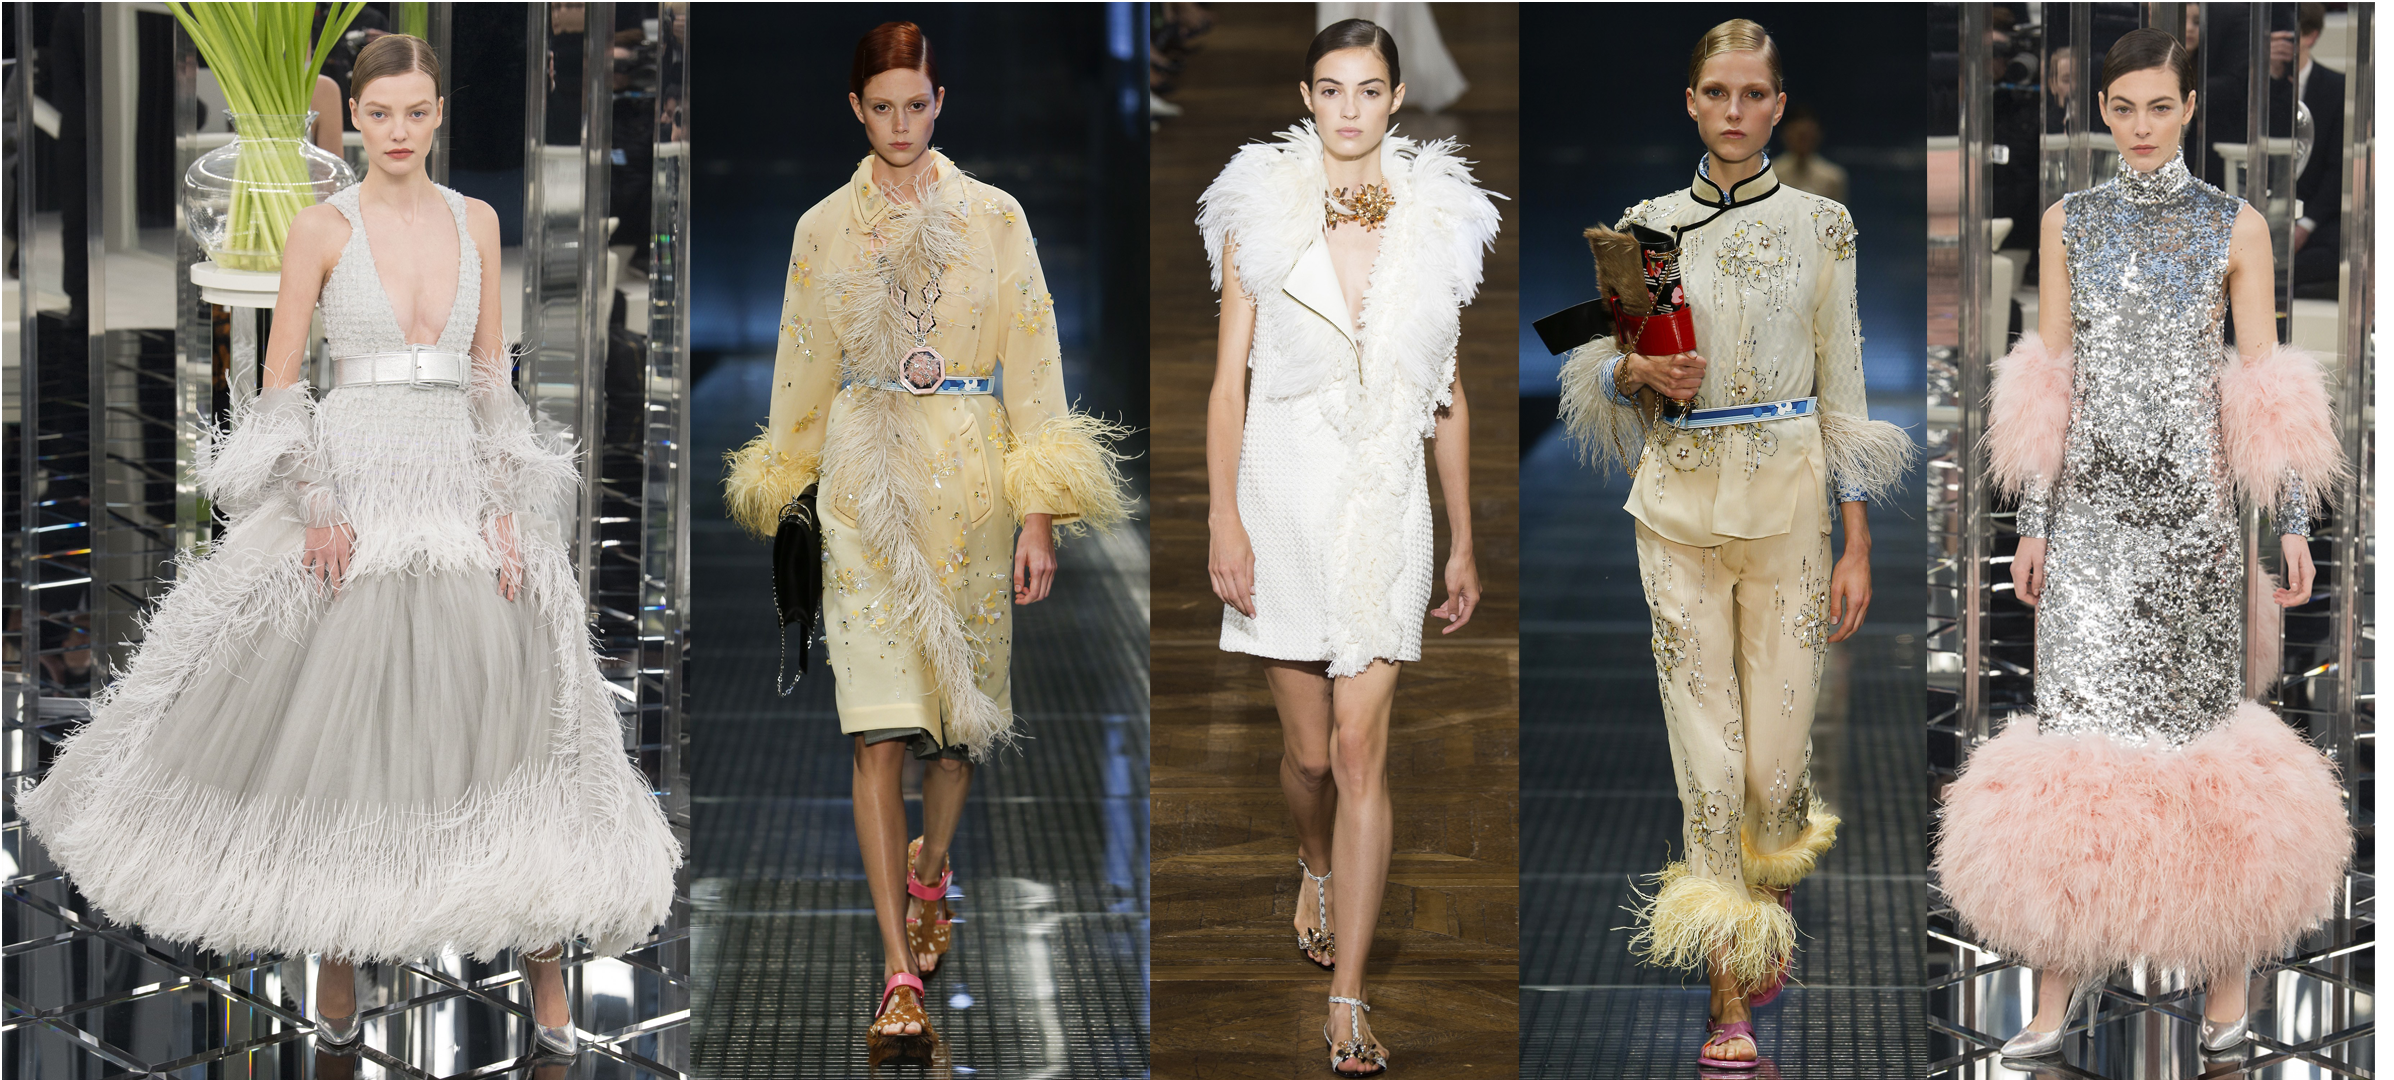 Left to Right: Chanel Spring 17 Couture, Prada RTW SS17, Lanvin RTW SS17, Prada RTW SS17, Chanel Spring 17 Couture